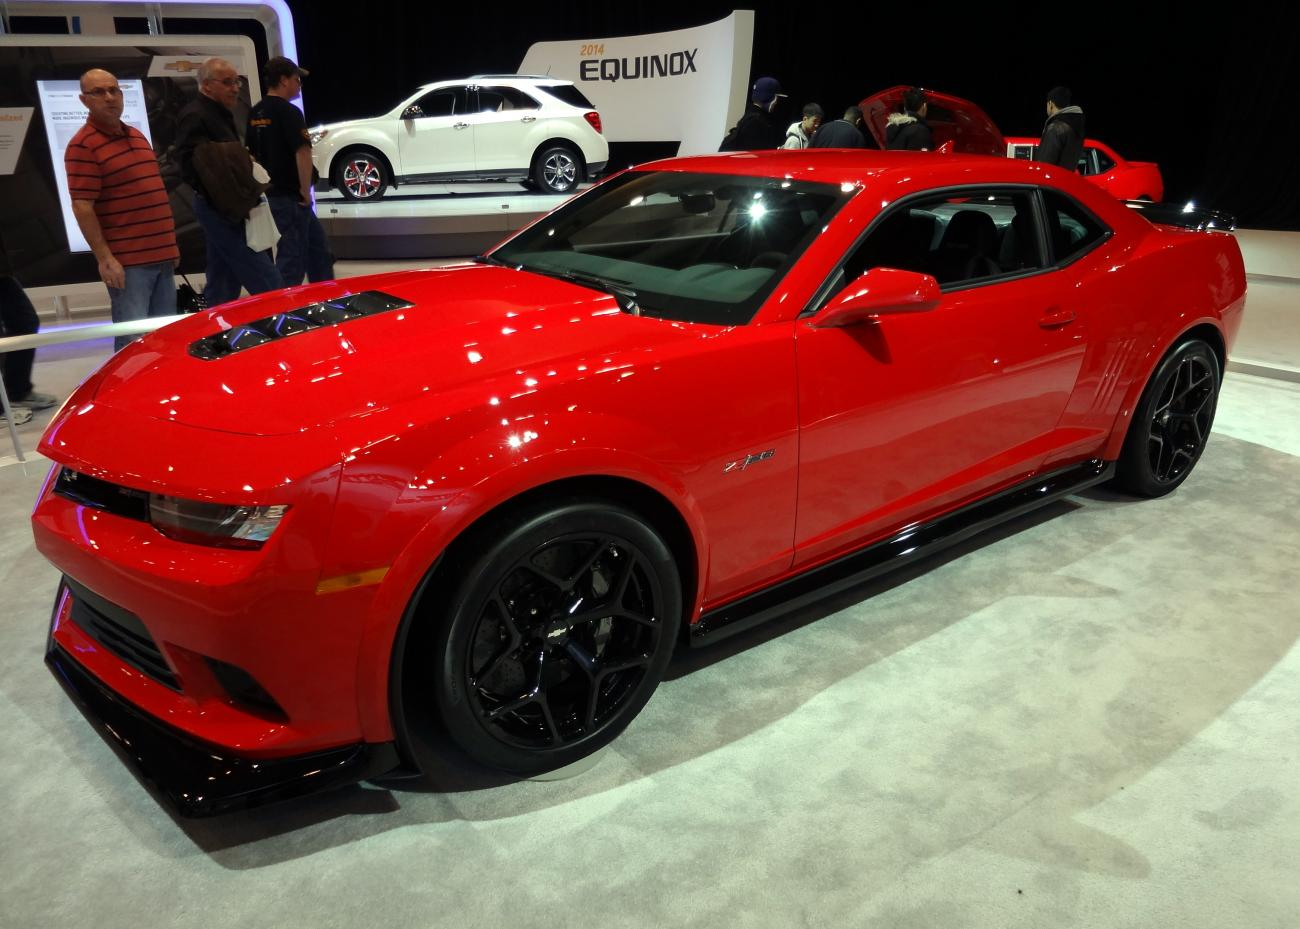 Red Hot Z 28 Pics From The Toronto Auto Show Camaro5